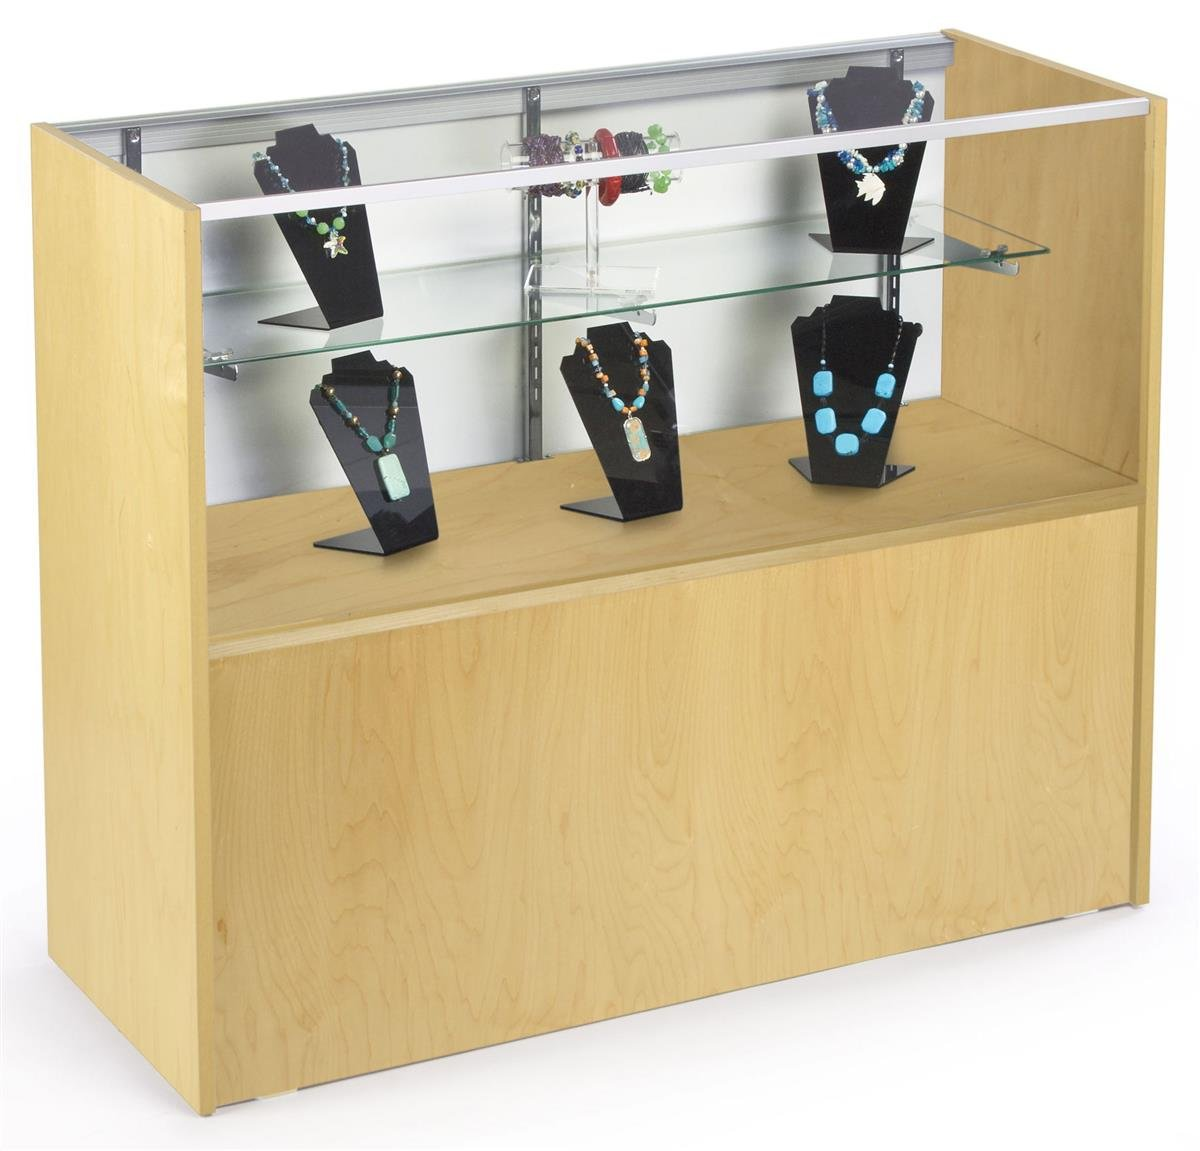 Maple Melamine Finish Retail Display Case with Tempered Glass, Hidden Storage Area and Sliding Doors, 48 x 38 x 18-Inch by Displays2go (Image #1)